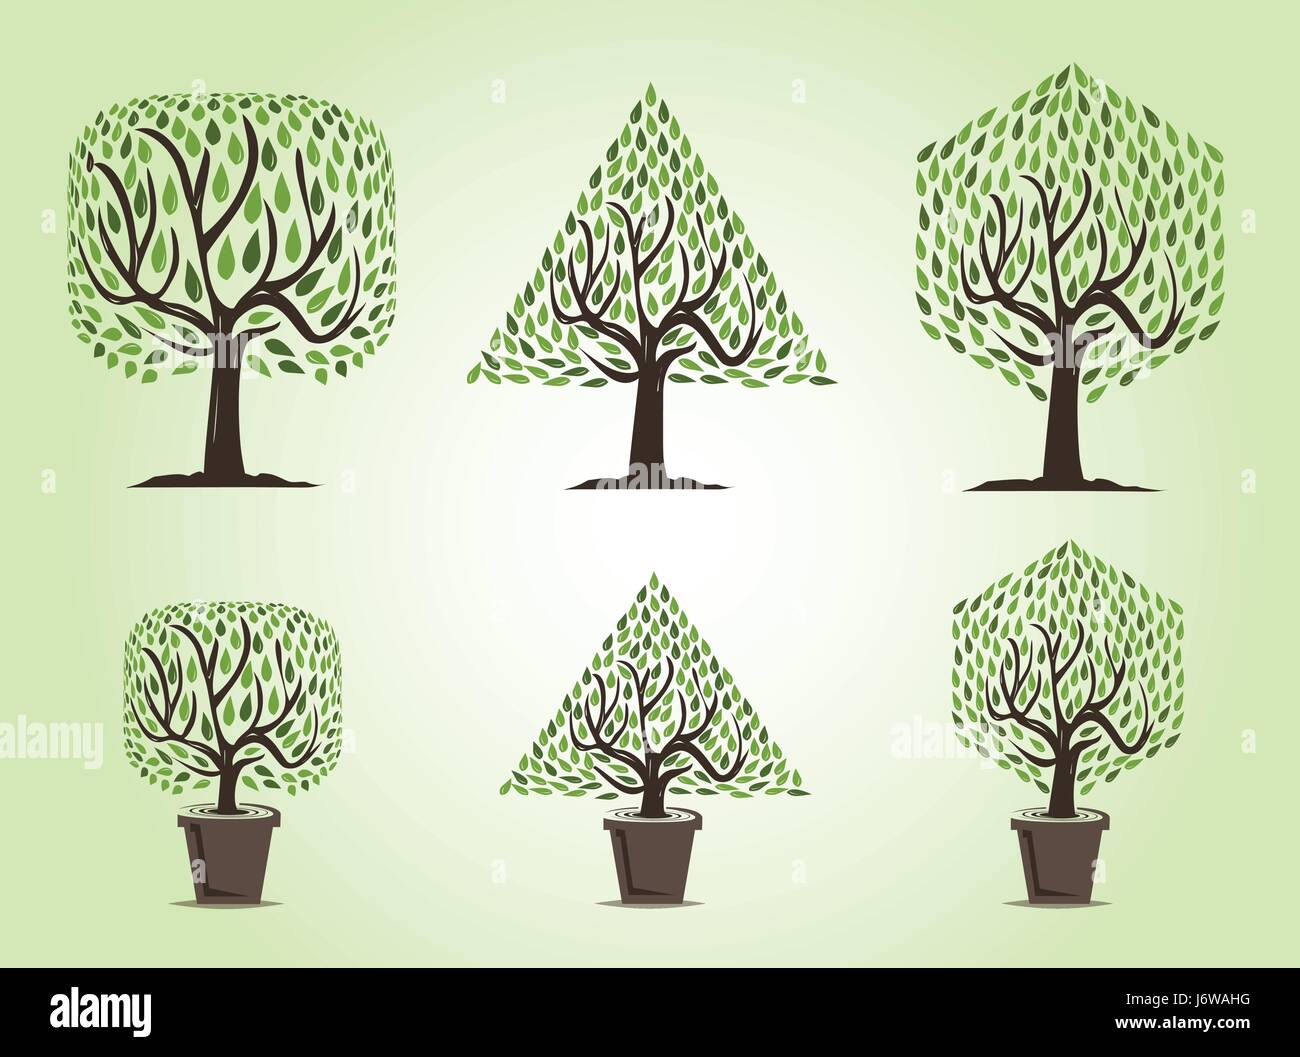 Set Of Tree With Two Types Of Trees Garden Trees And Decorative